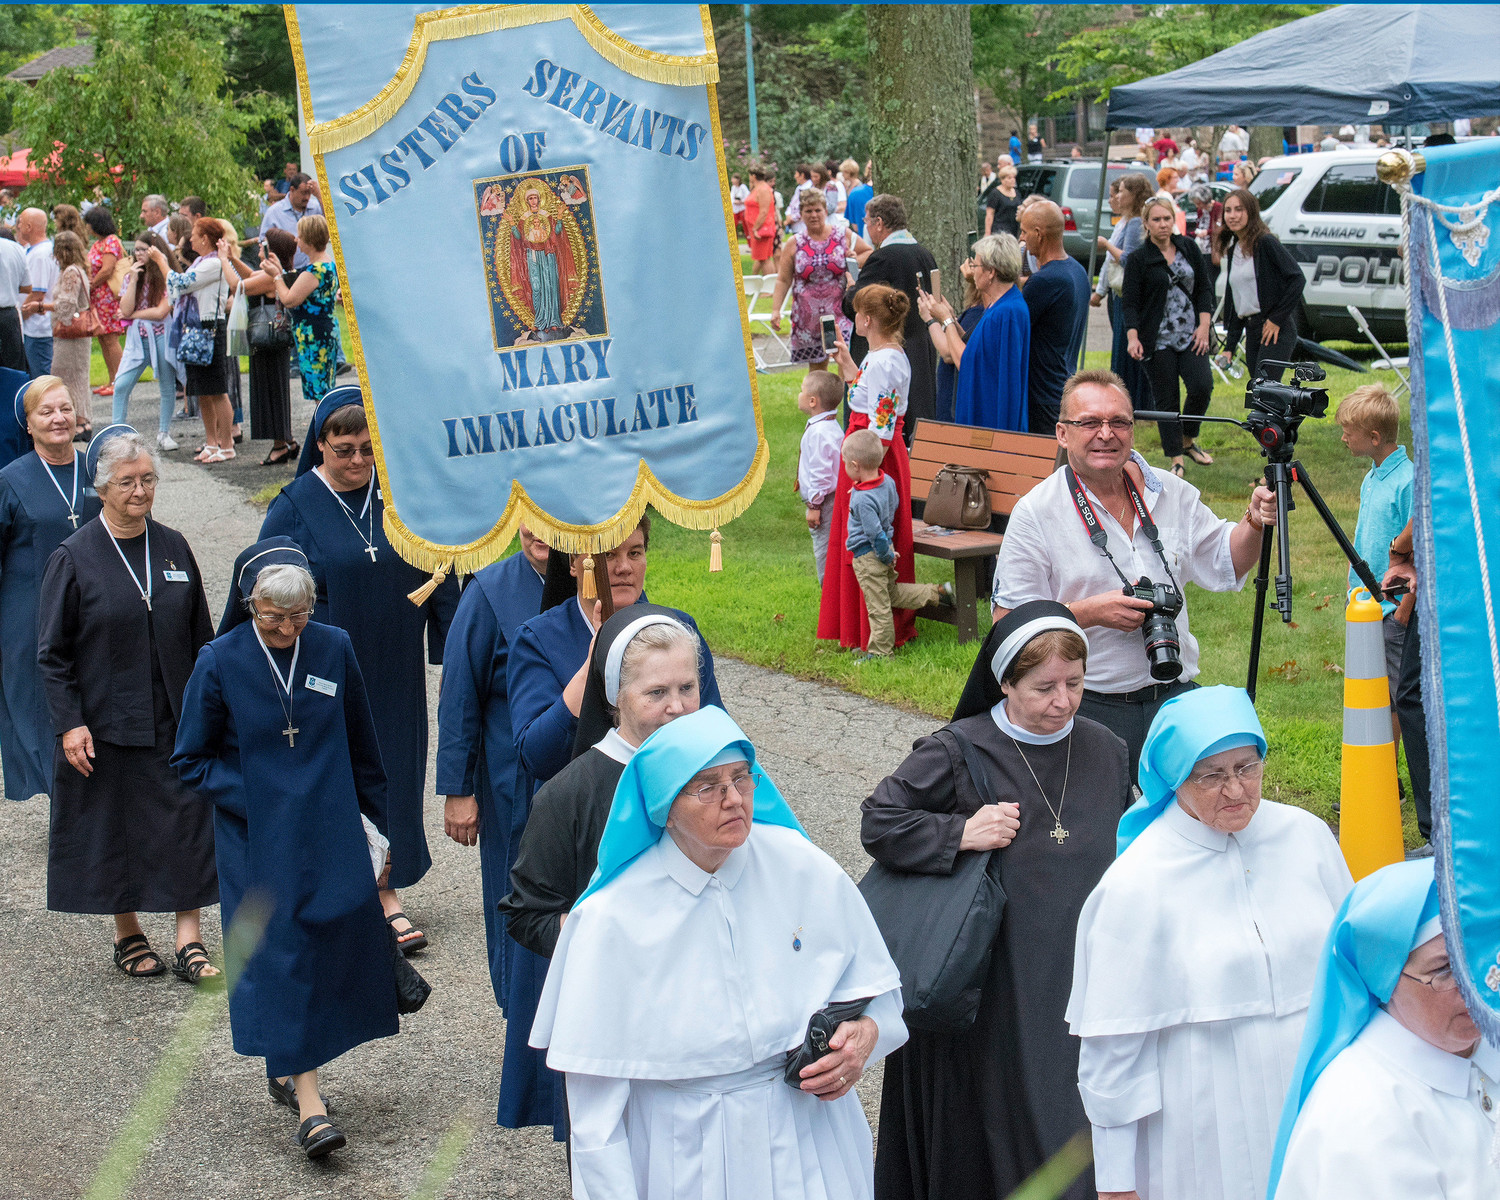 The Sisters Servants of Mary Immaculate, who hosted the event, carry their banner in the procession.